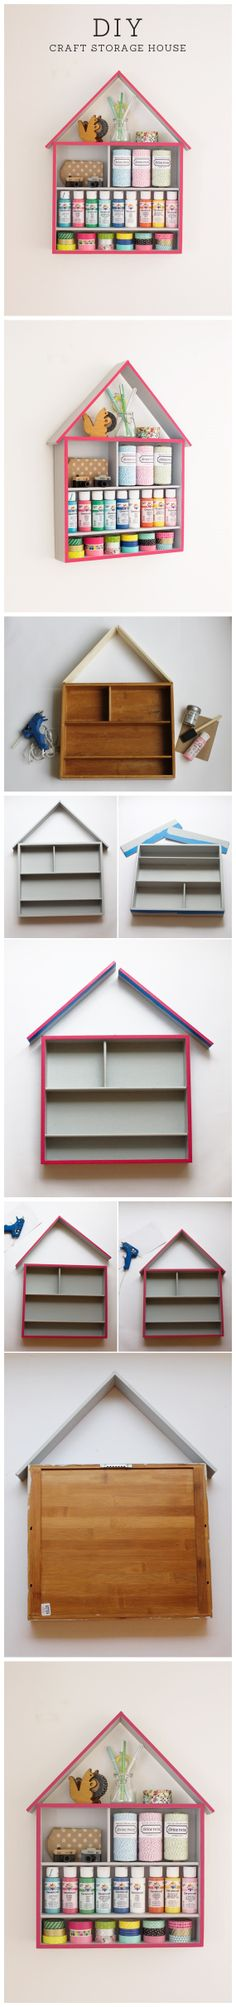 How To #DIY #Craft #Storage #House